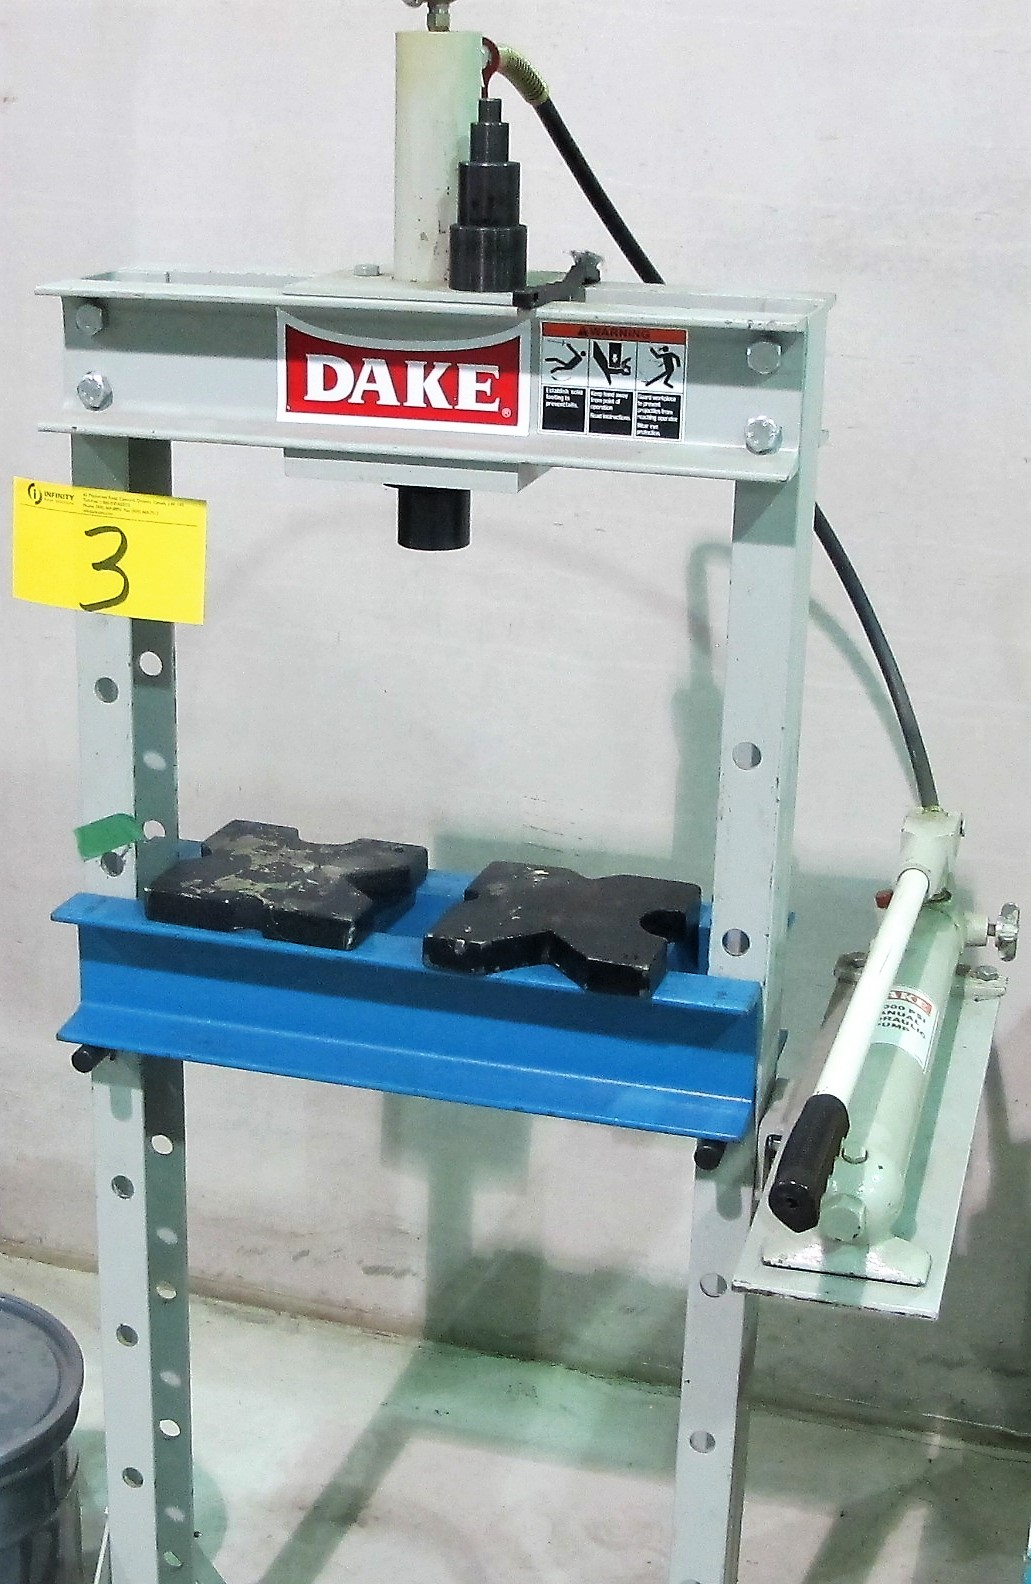 Lot 3 - DAKE SHOP PRESS W/MANUAL HYDRAULIC PUMP